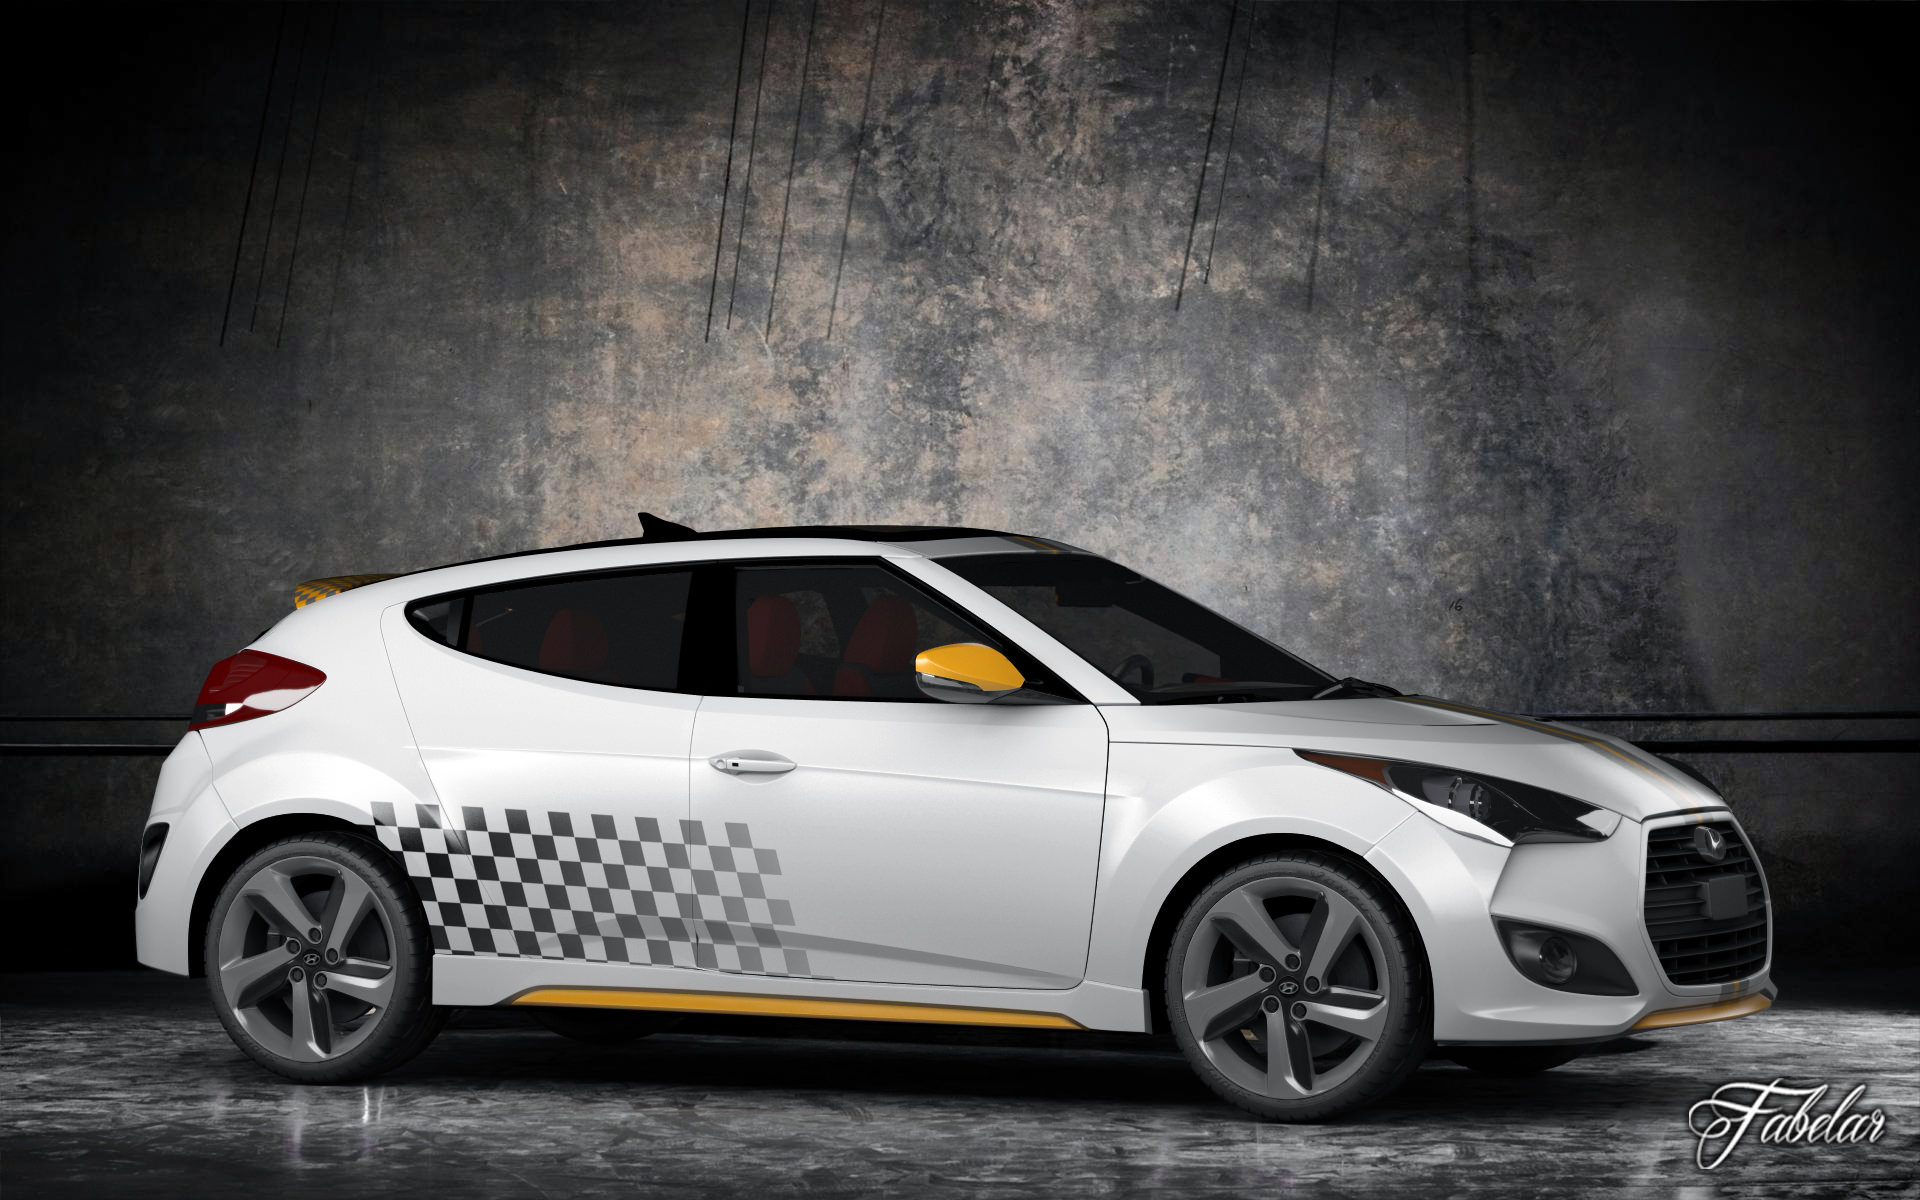 full txgarage hyundai mt veloster the of turbo review